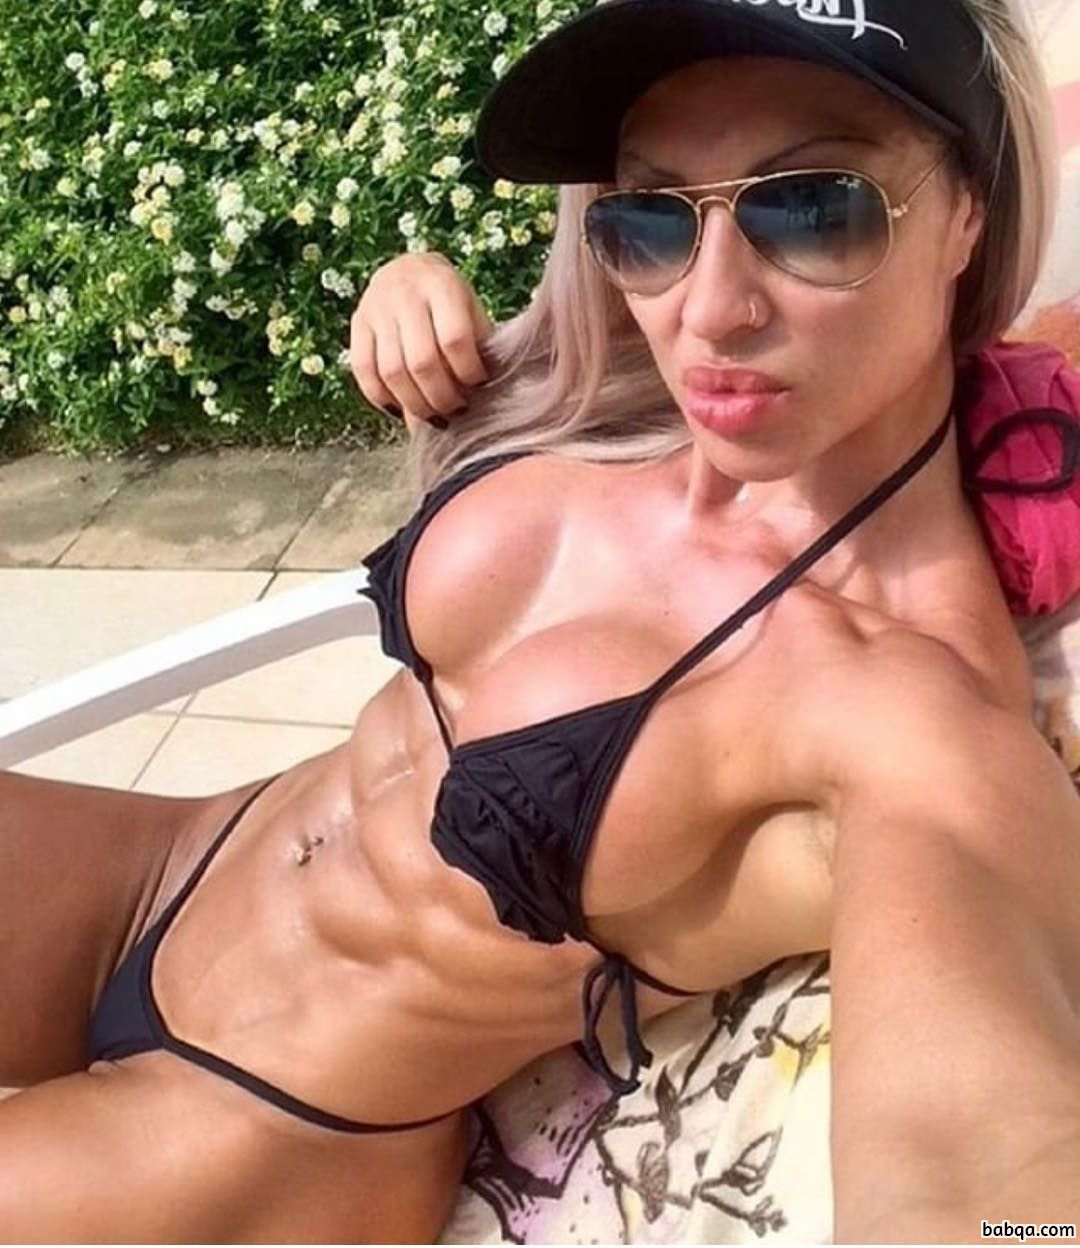 hot chick with muscular body and muscle biceps pic from instagram